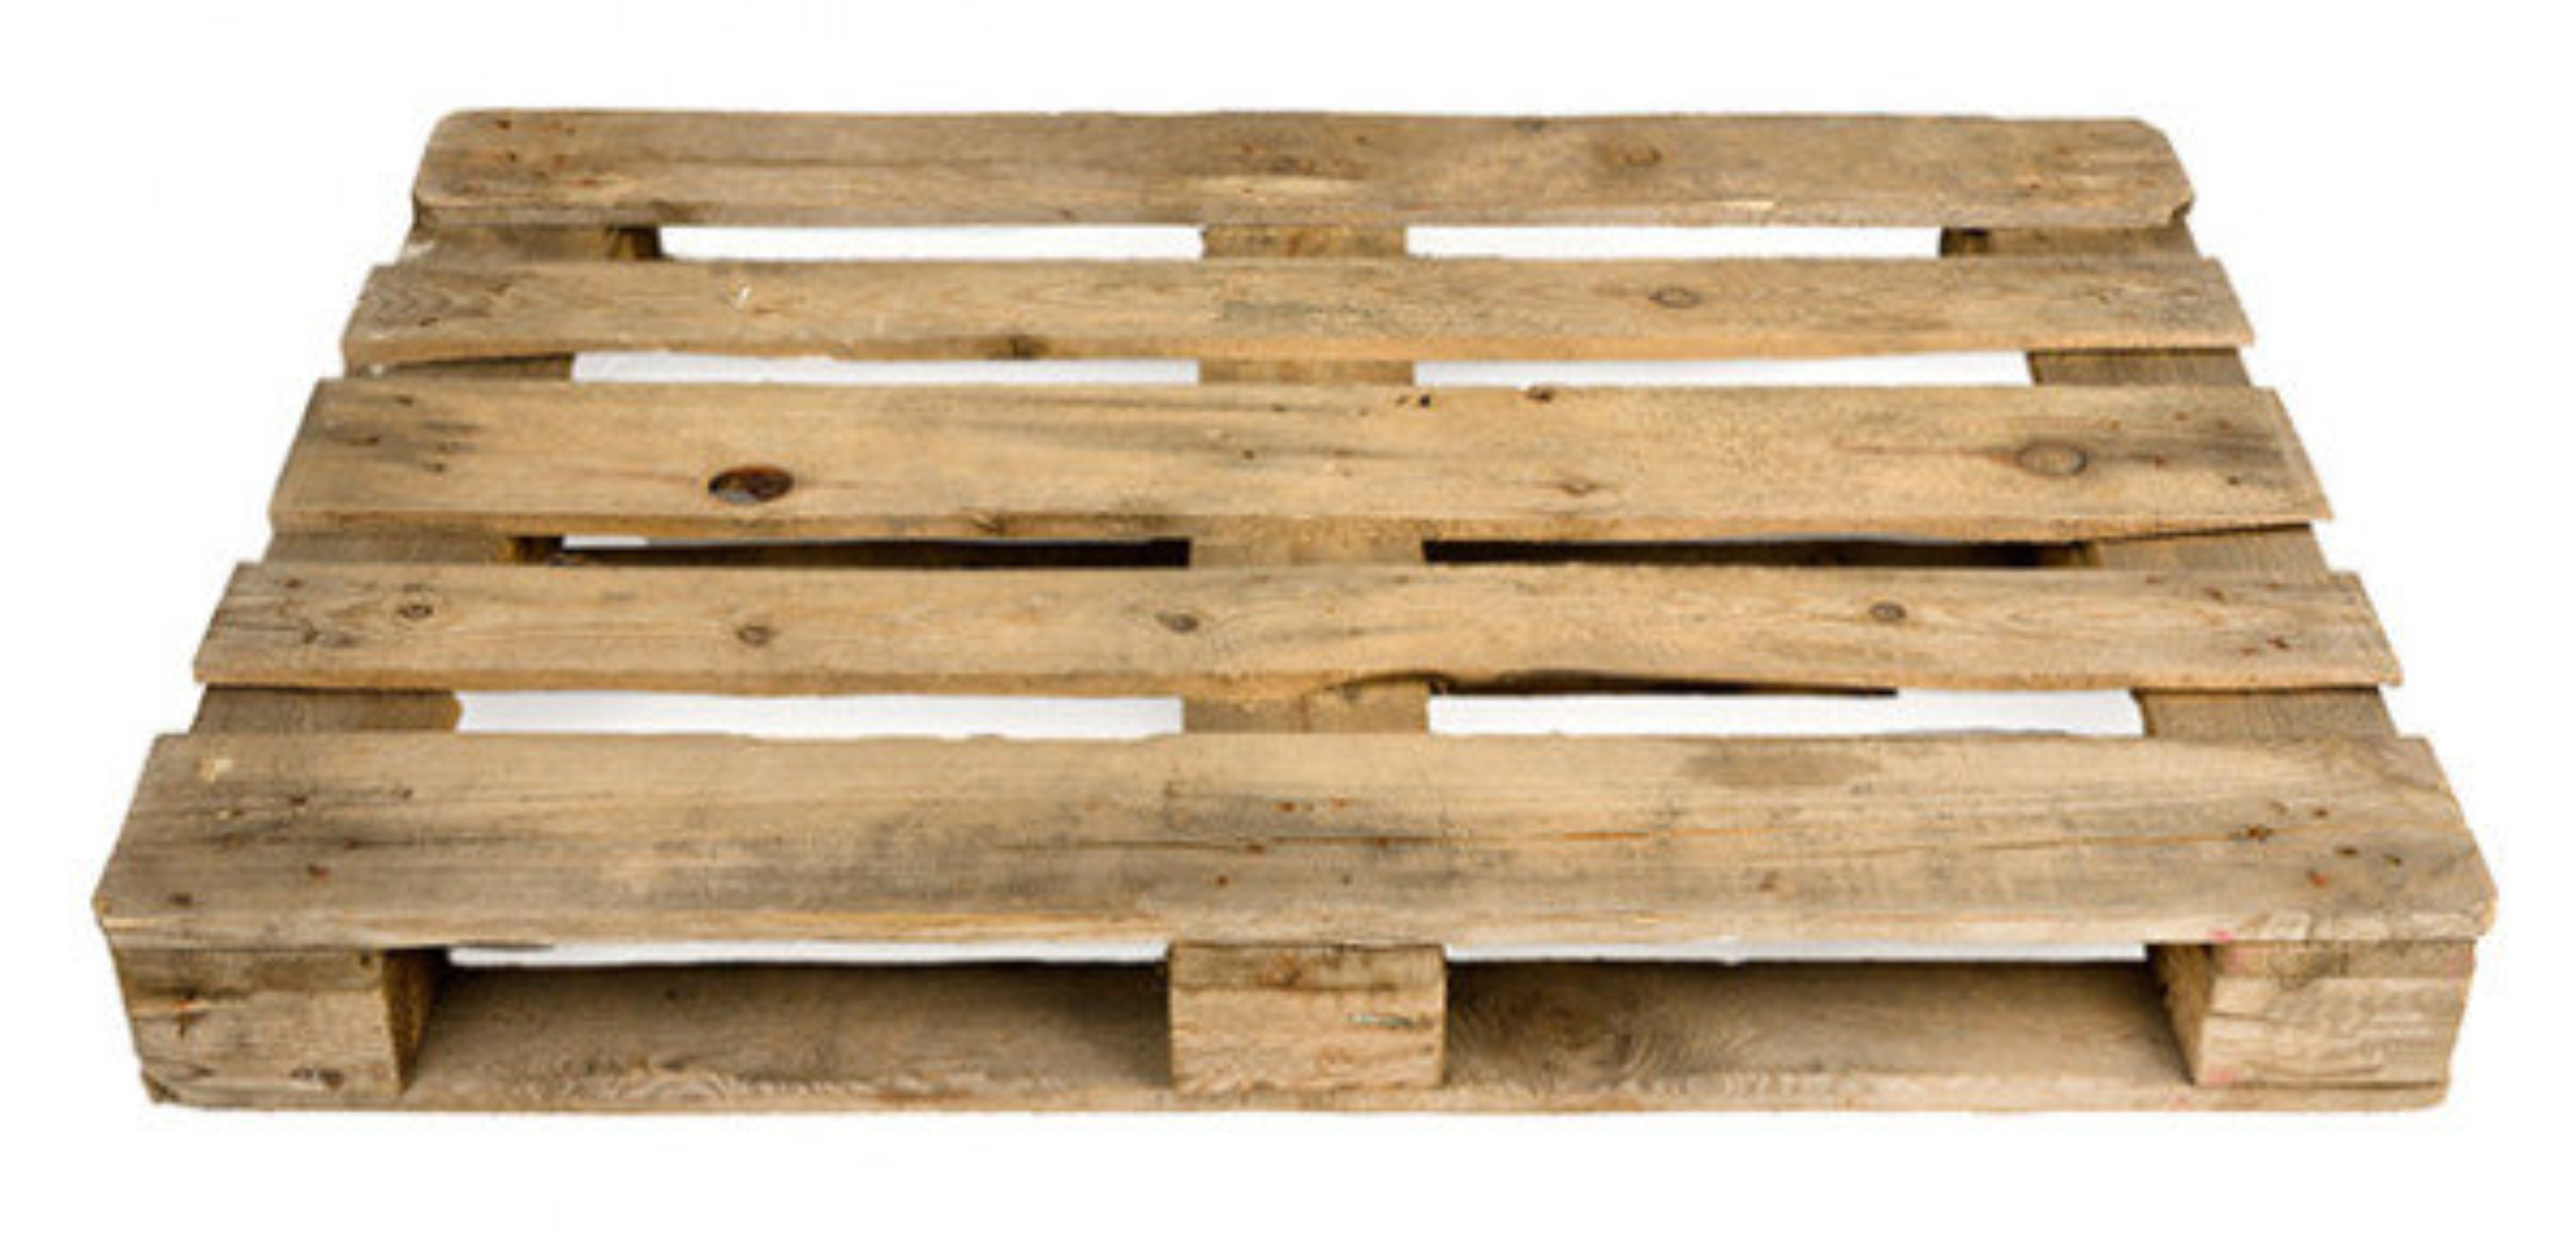 Not All Pallets Can Be Safely Stored On Pallet Racking